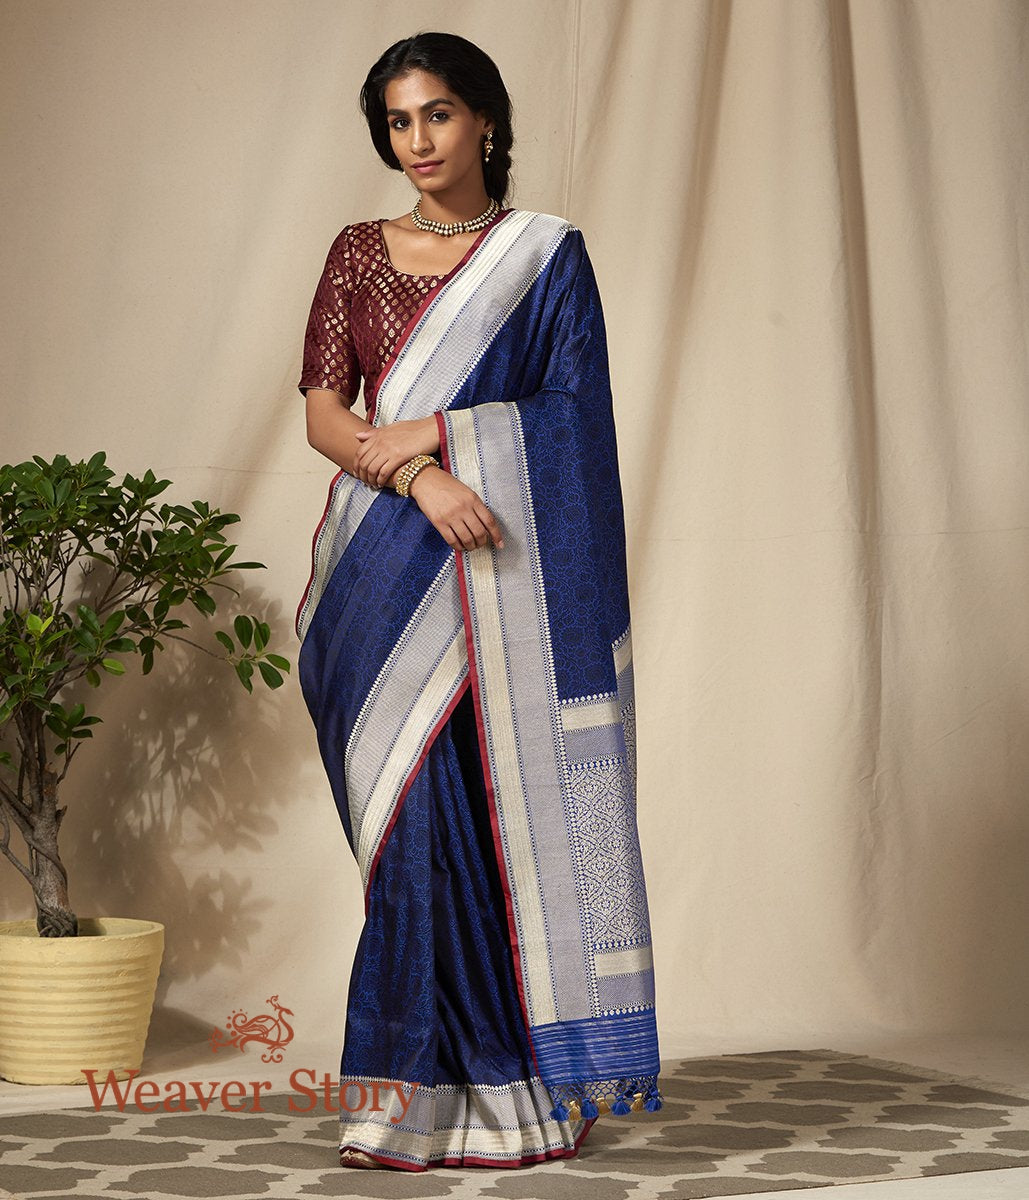 Handwoven Blue Banarasi Tanchoi Saree with Zari Border